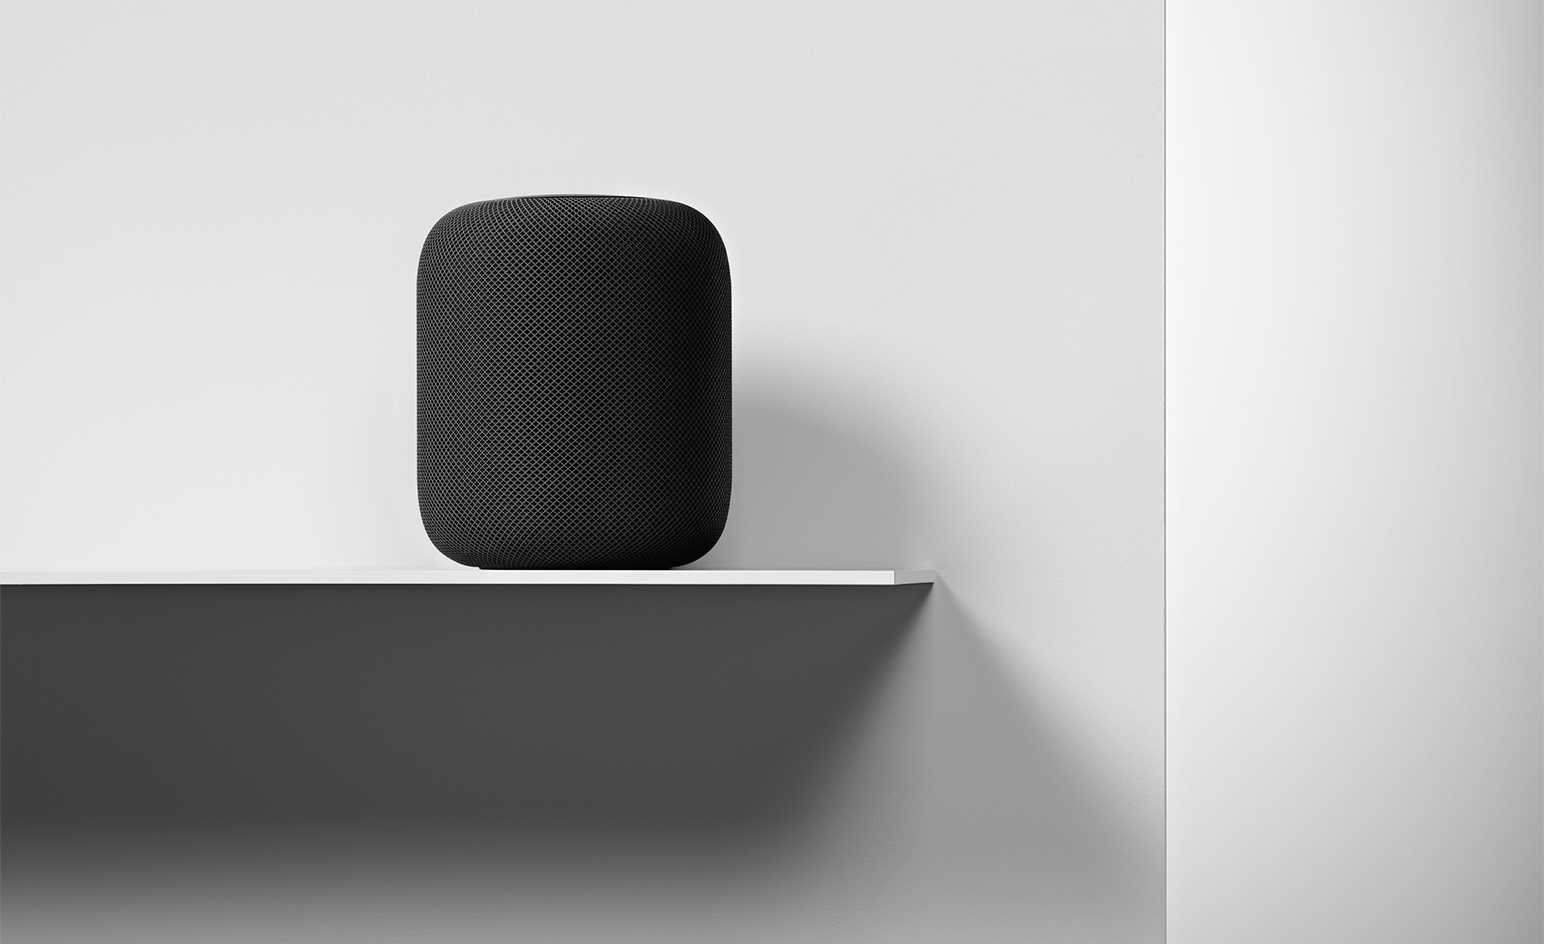 HomePod smart speaker by Apple